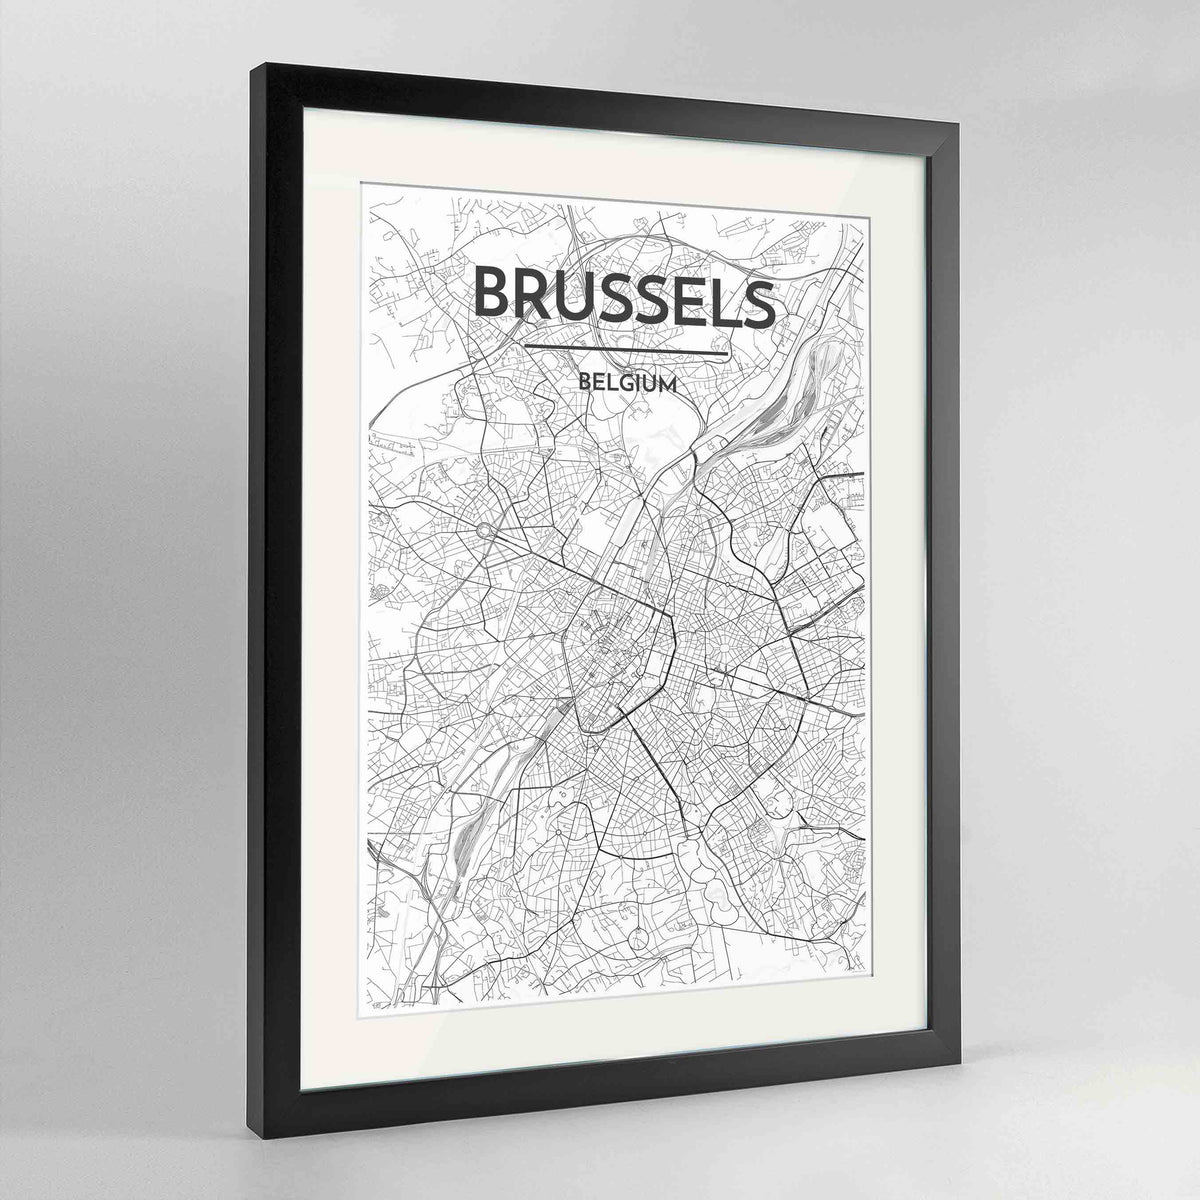 "Framed Brussels Map Art Print 24x36"" Contemporary Black frame Point Two Design Group"